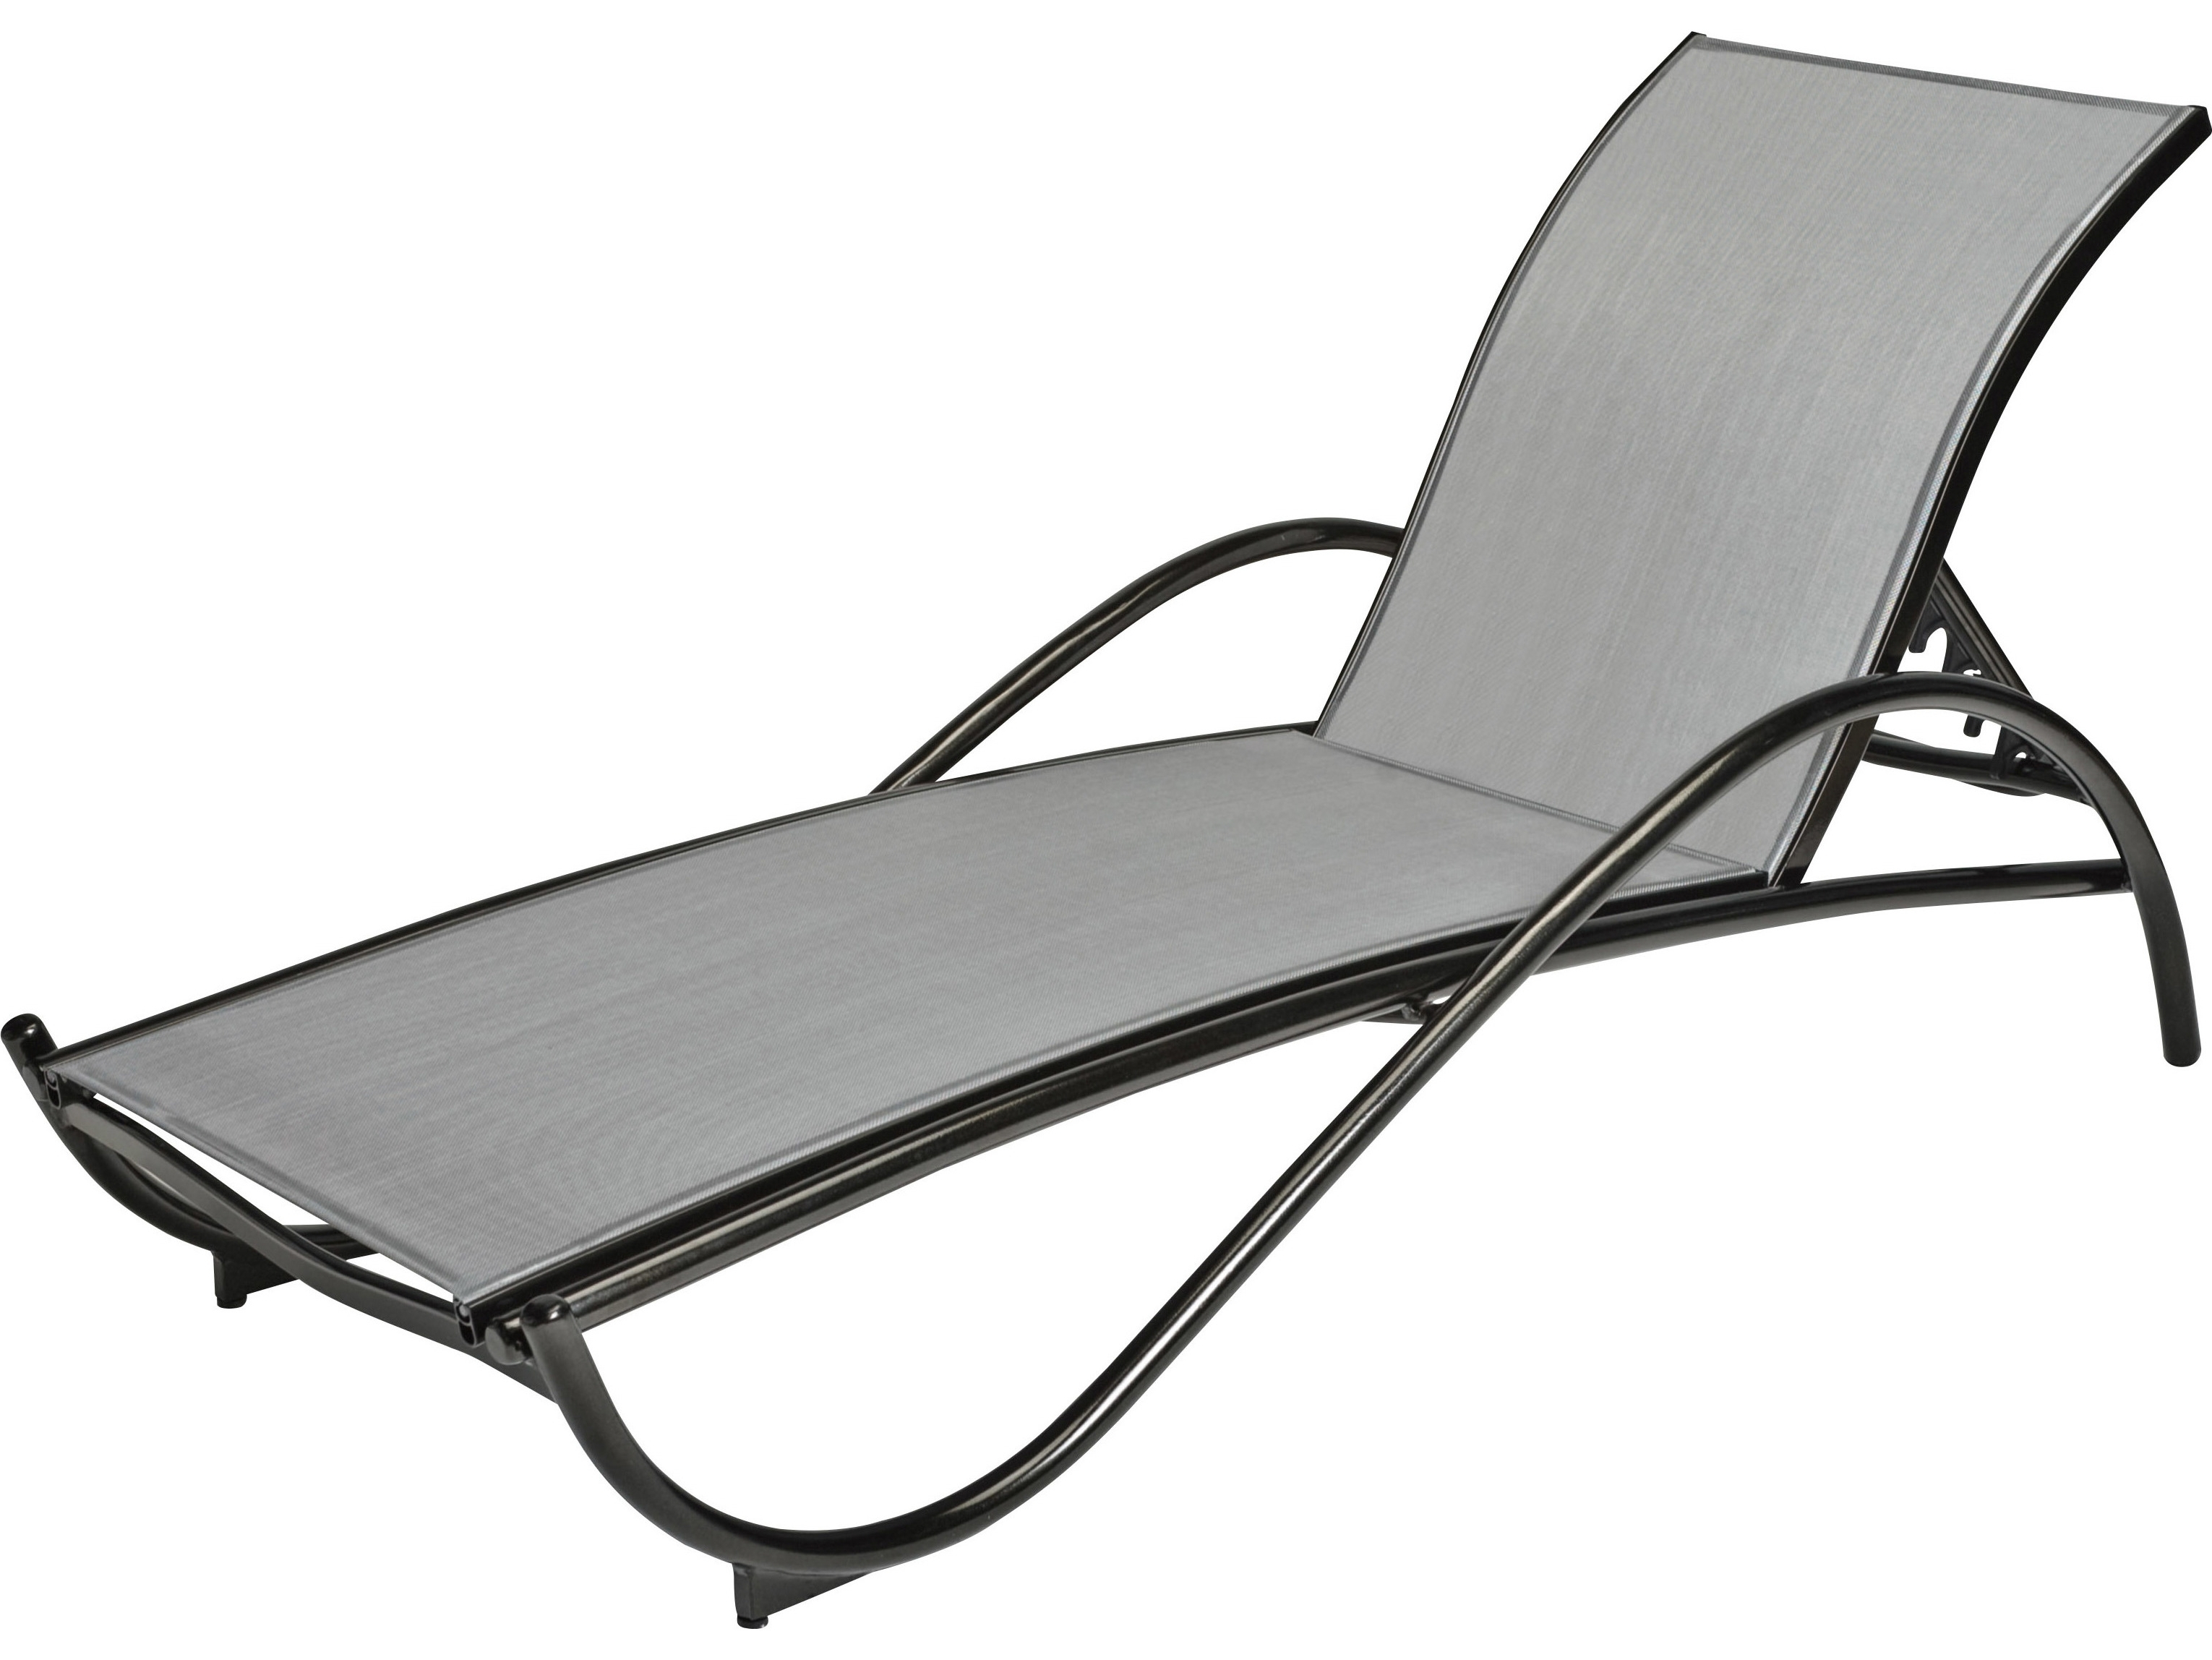 Most Popular Picture 4 Of 38 – Lounge Outdoor Chairs Elegant Woodard Tribeca Regarding Atlanta Chaise Lounge Chairs (View 9 of 15)